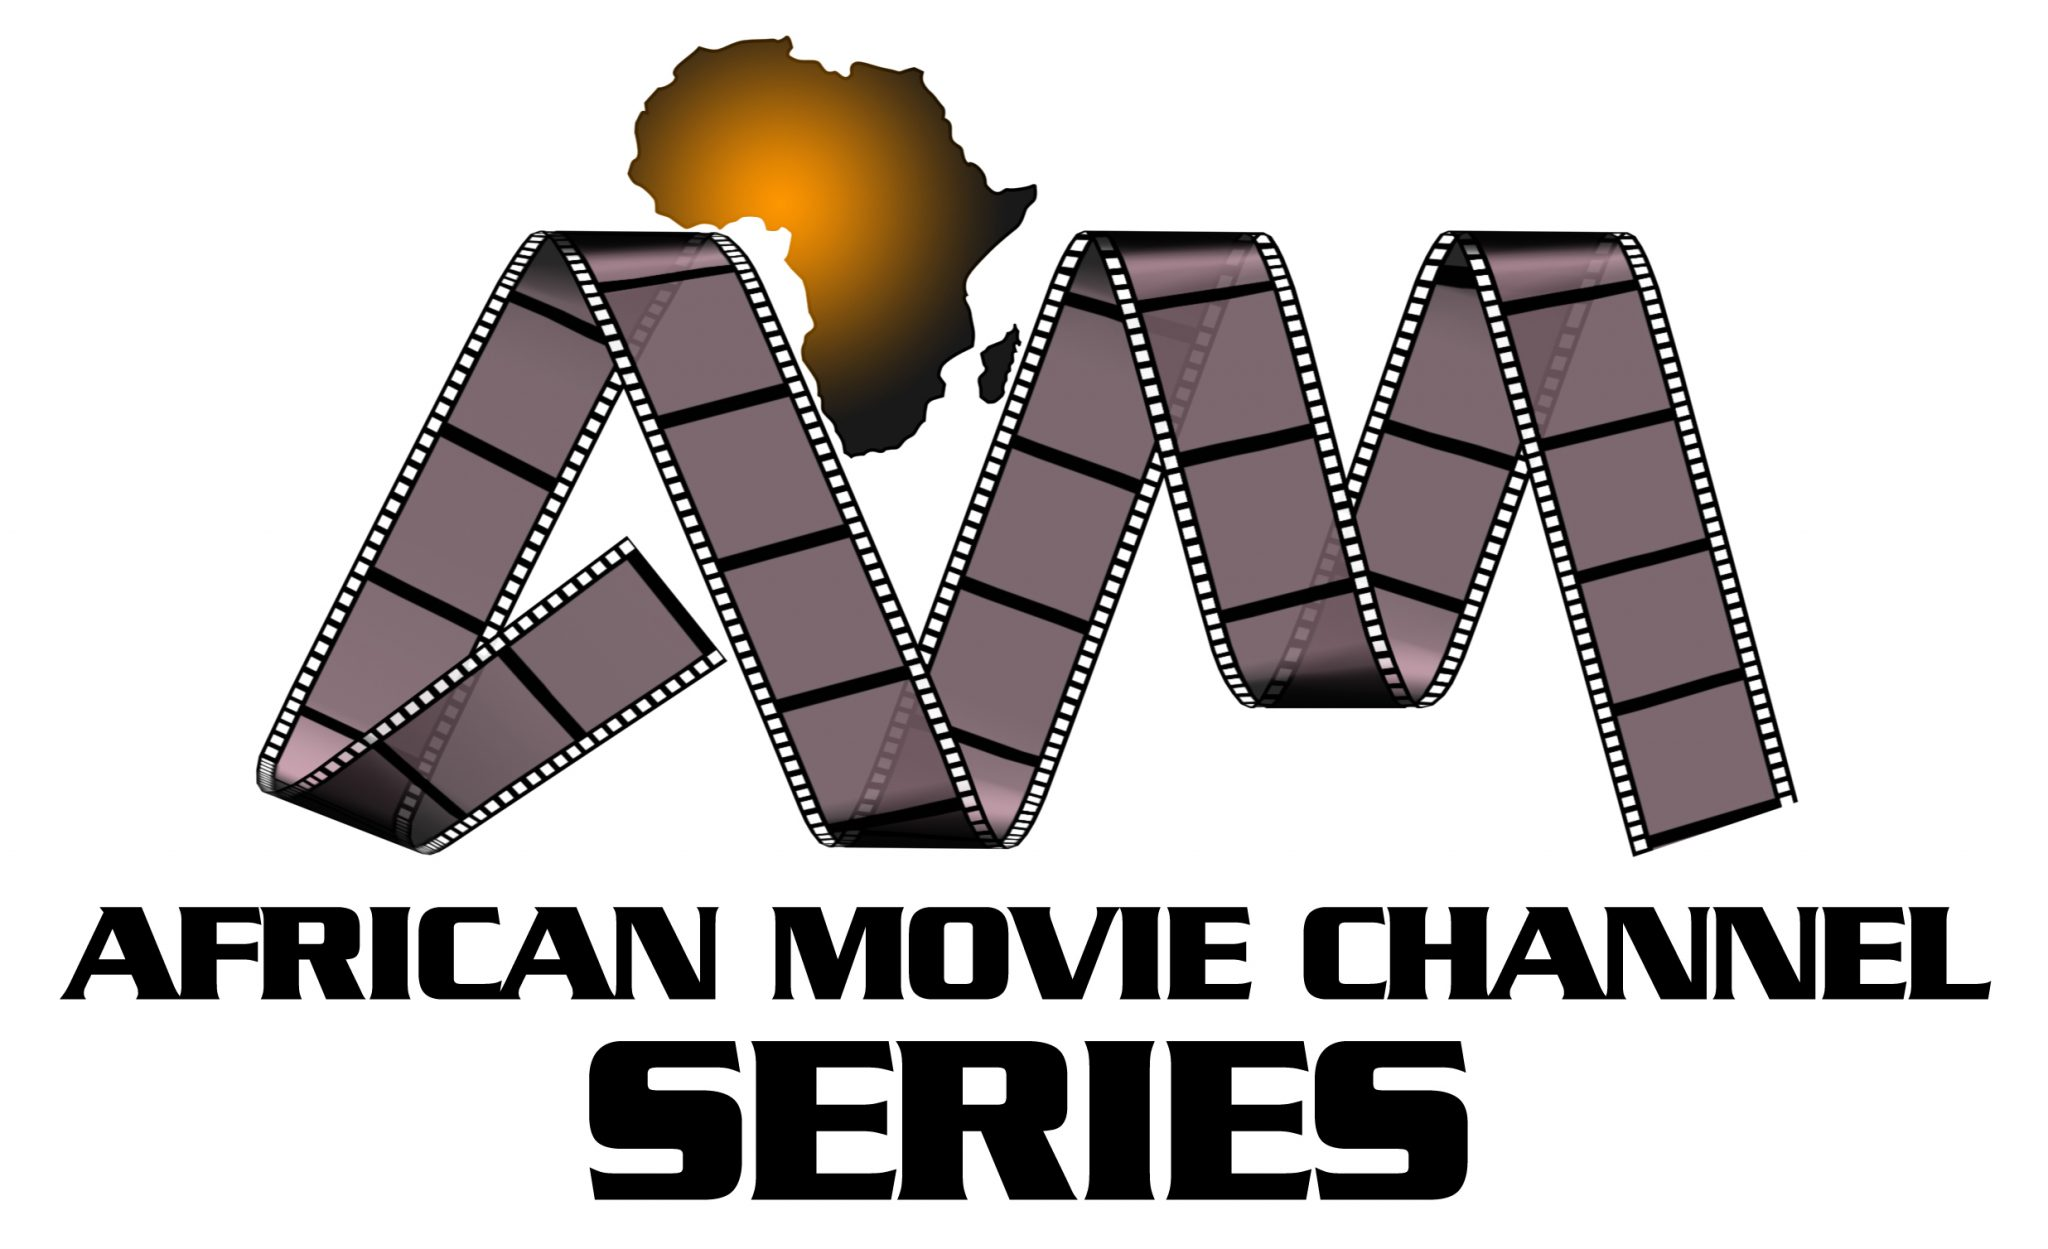 African Movie Channel Series launches on Zuku